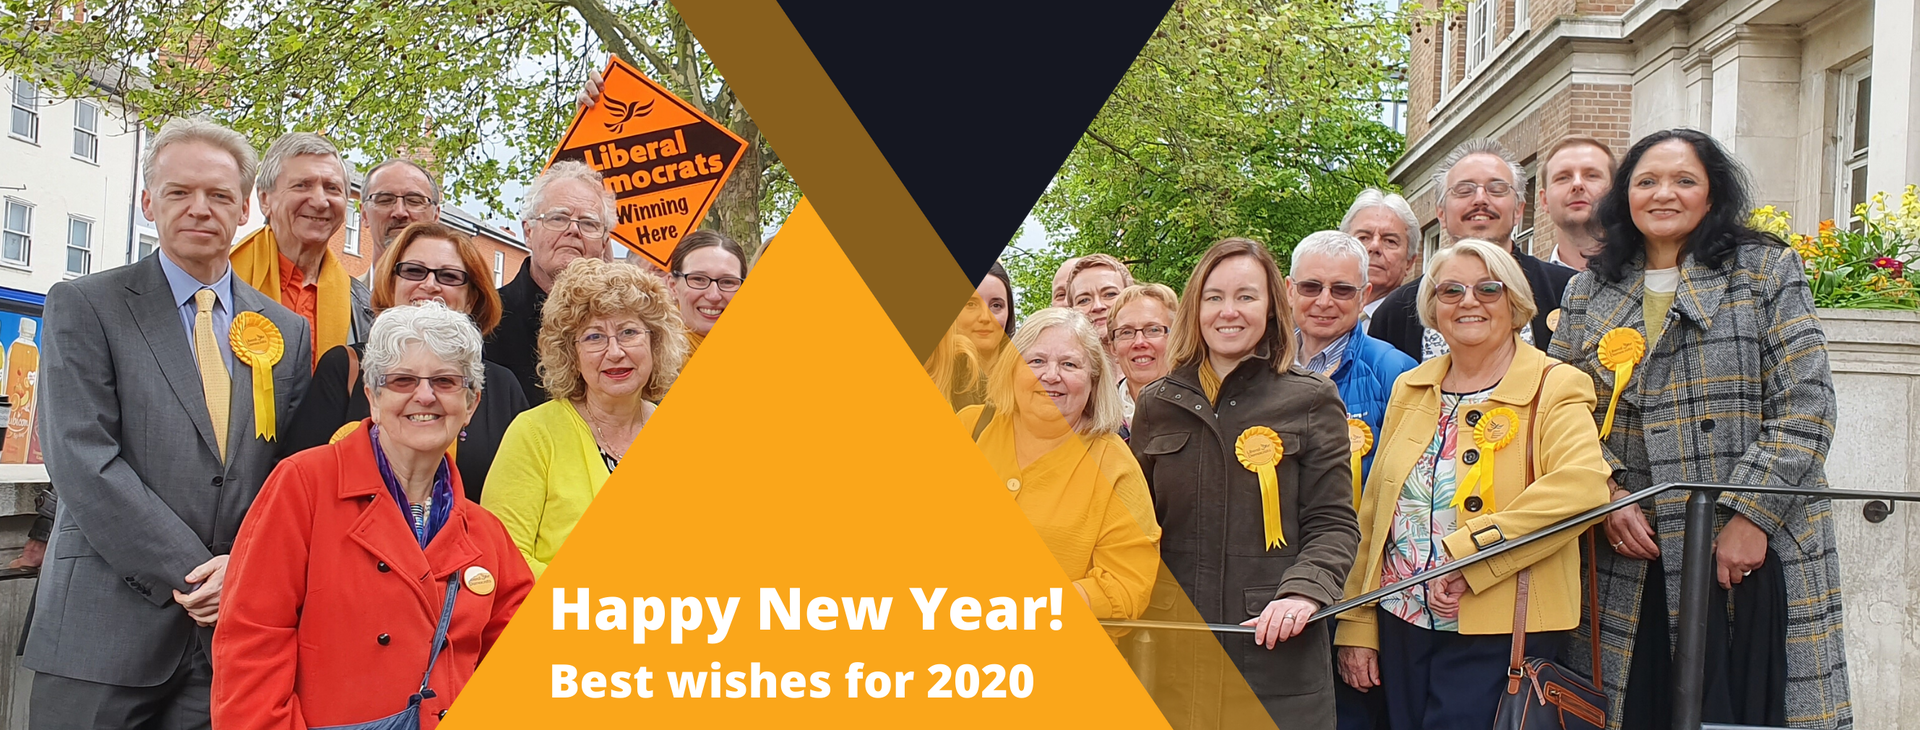 The Chelmsford Liberal Democrat Team